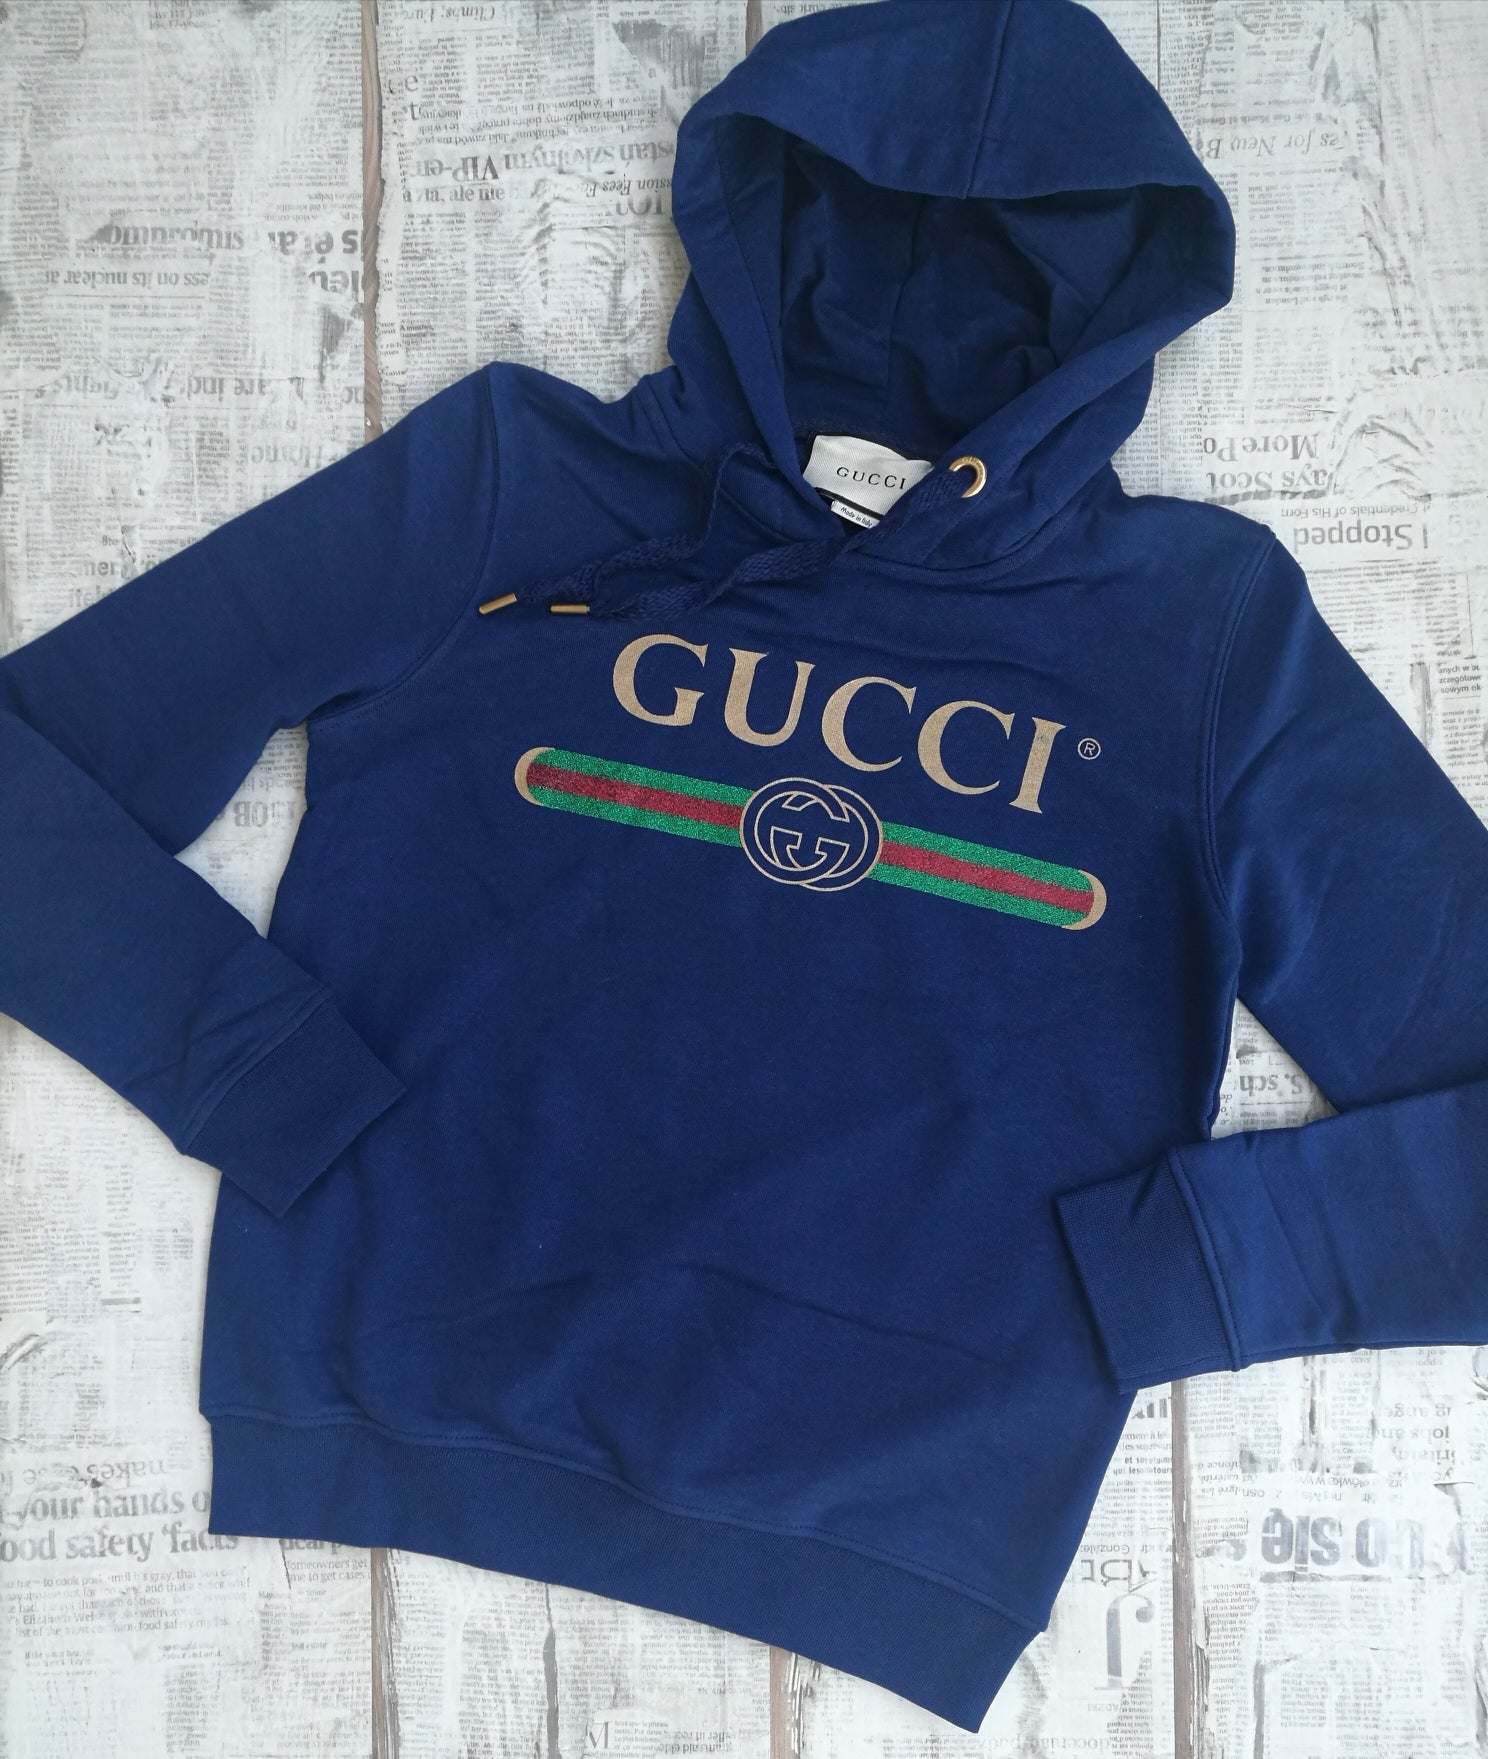 0538da190387 Gucci Women s Hooded Gucci Logo Cotton Sweatshirt - rvbrandstore